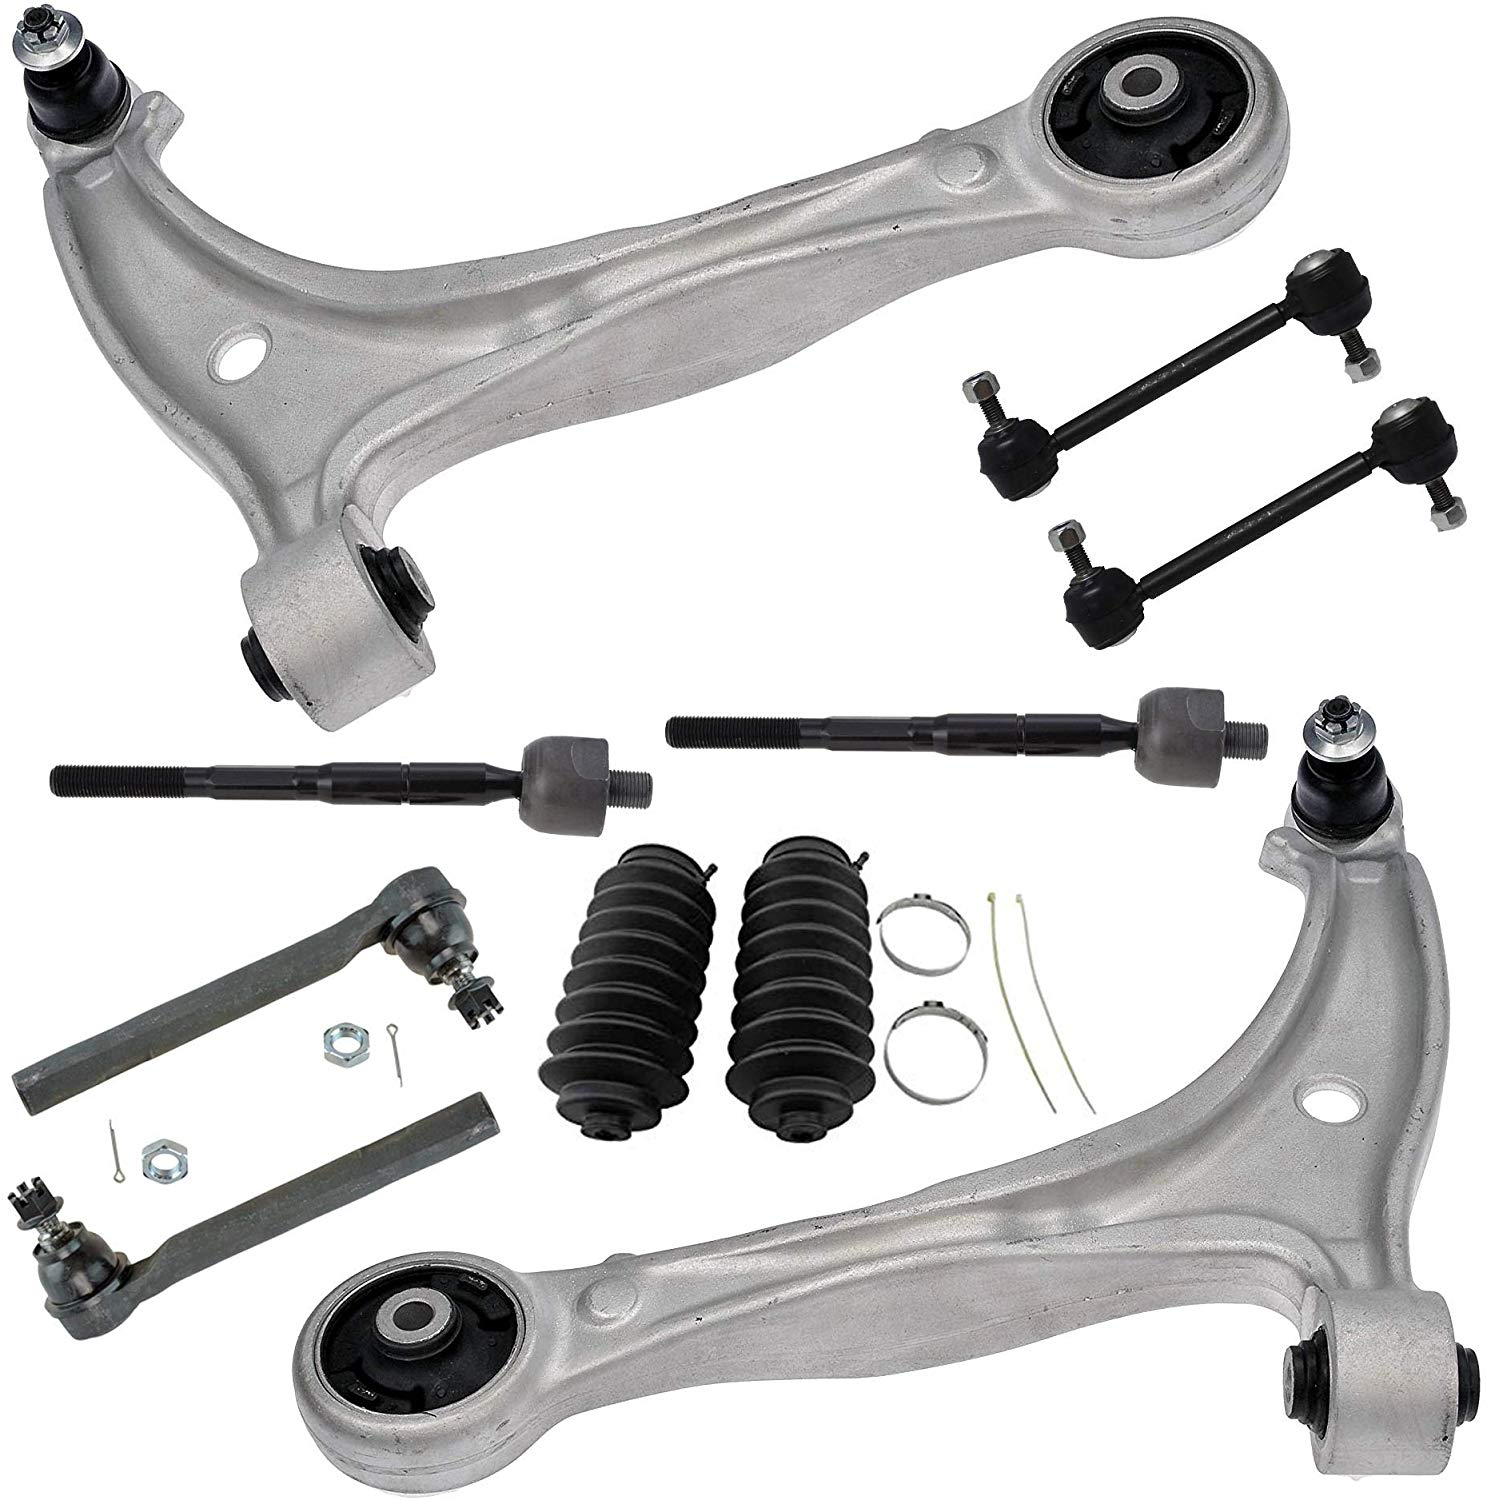 PartsW 10 Pc New Front Suspension Kit for Honda Odyssey 1999-2001 Inner /& Outer Tie Rod End /& Sway Bar End Link Control Arms /& Ball Joints Left /& Right Side Rack /& Pinion Bellow Boot